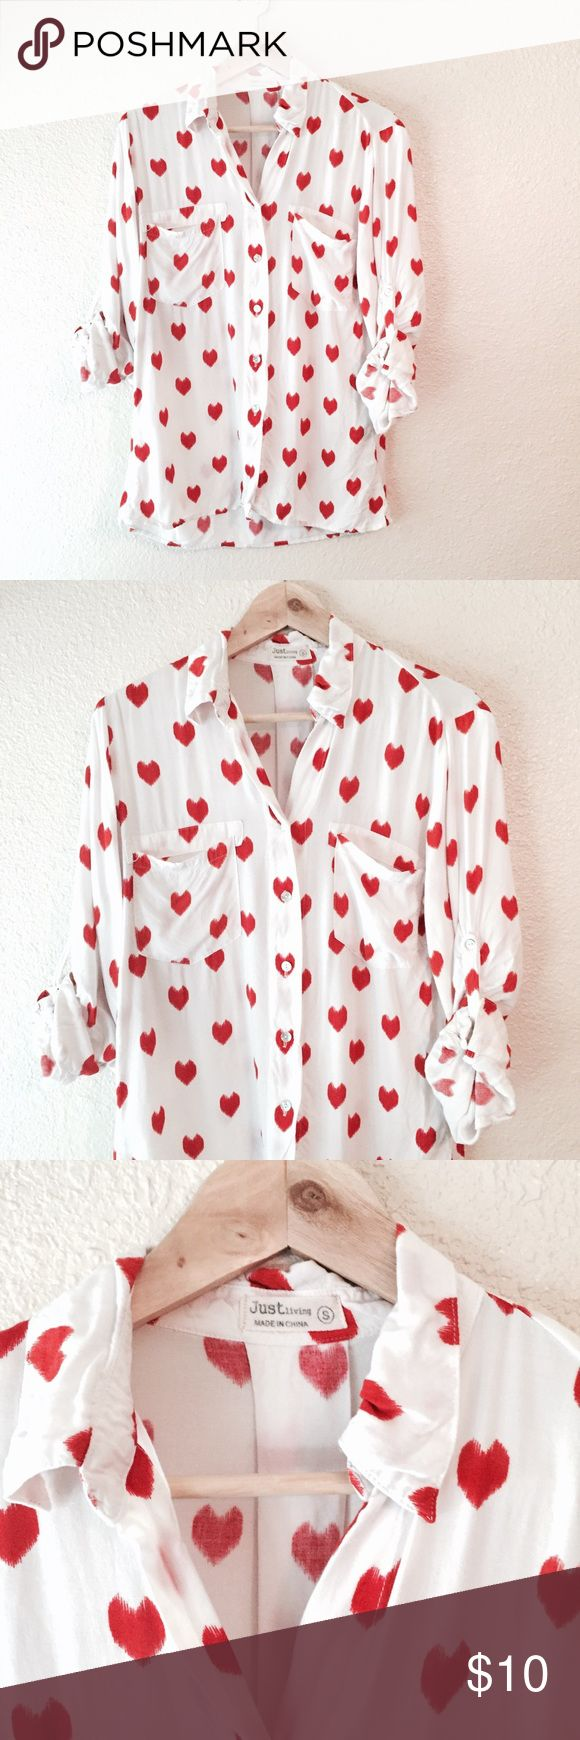 White button down shirt with red hearts Blouse S Lovely and adorable! White button down blouse with light red hearts printed across the entire shirt. Roll up sleeves with a strap and button. Front pockets. Loose fitting and super soft fabric! Has a little bit of noticeable wear. Just living brand, size small. Just Living Tops Button Down Shirts